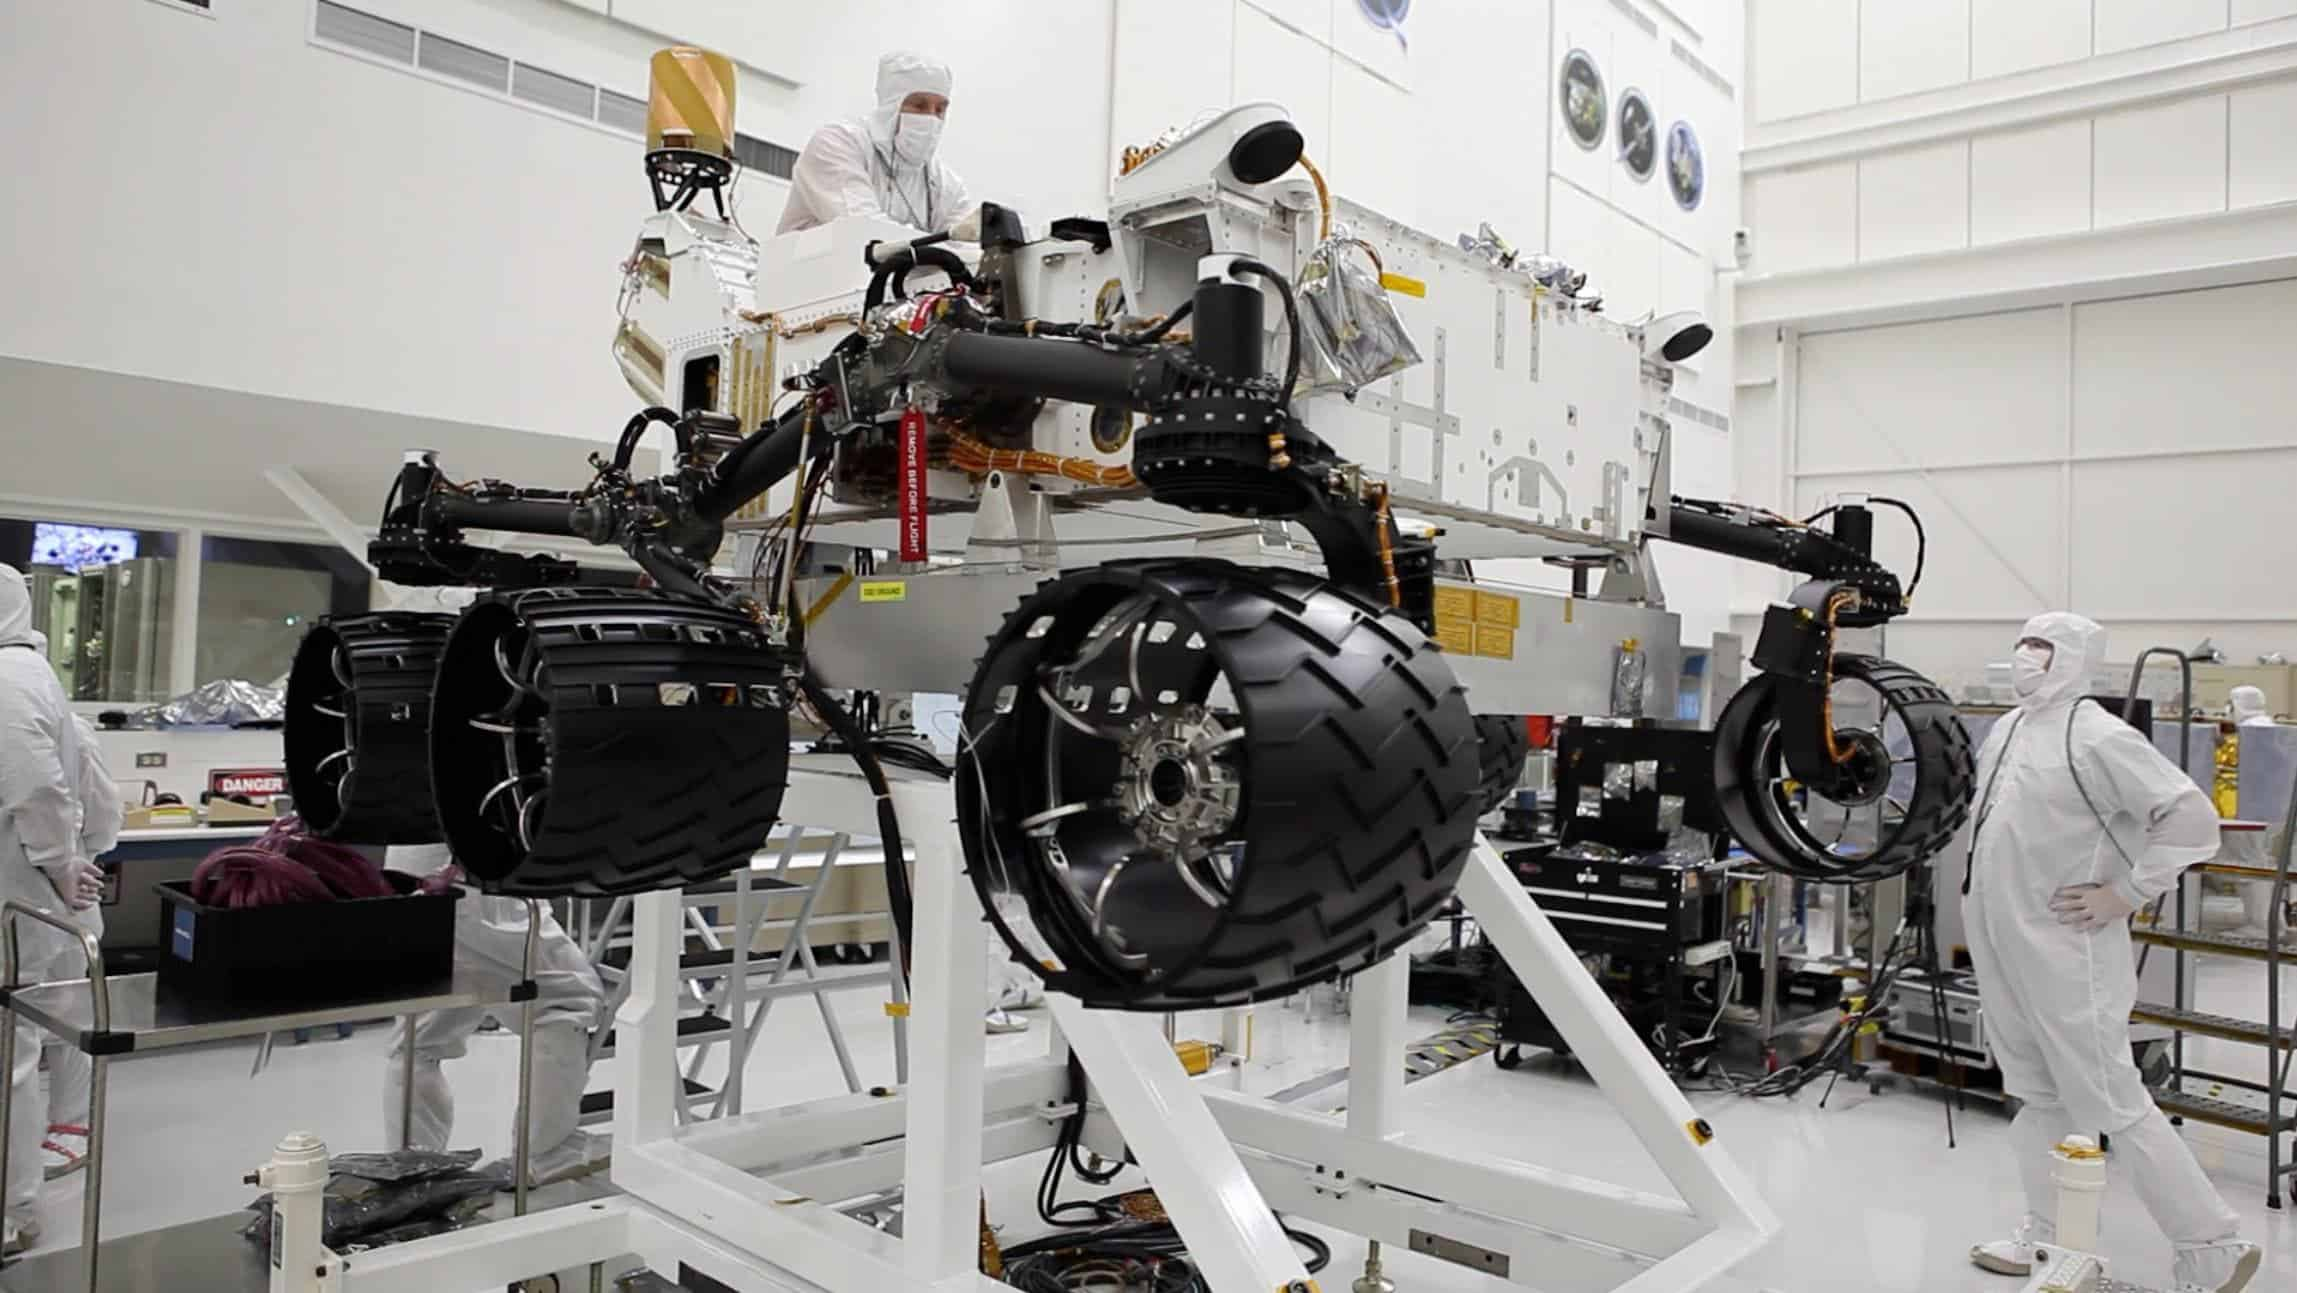 NASA Curiosity Mars Rover will pave the way for the search for life